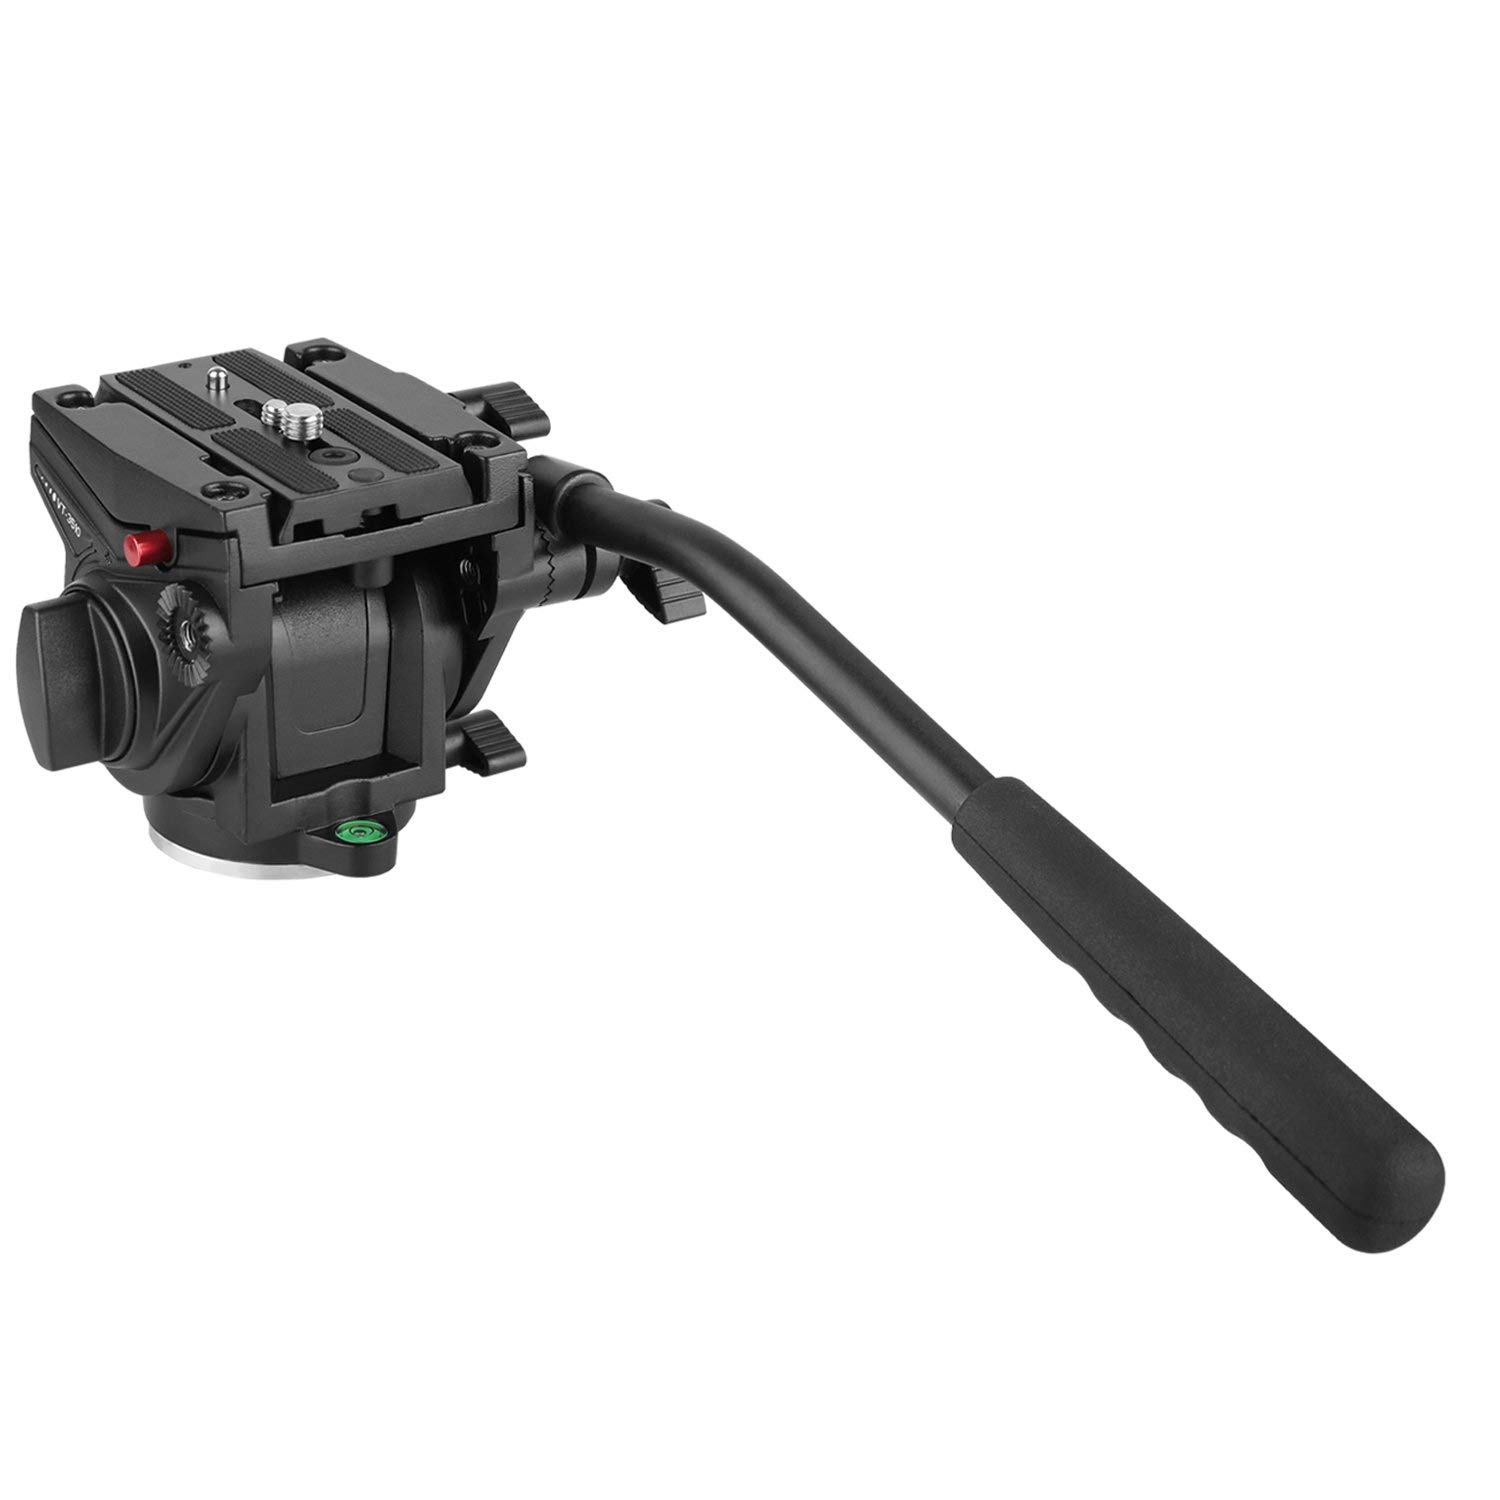 Top Deals KINGJOY Heavy Duty Video Camera Fluid Drag Head, Fluid Drag Pan Tilt Head for DSLR Camera Video Camcorder Shooting benro s2 video head pan and tilt head for dslr video camera